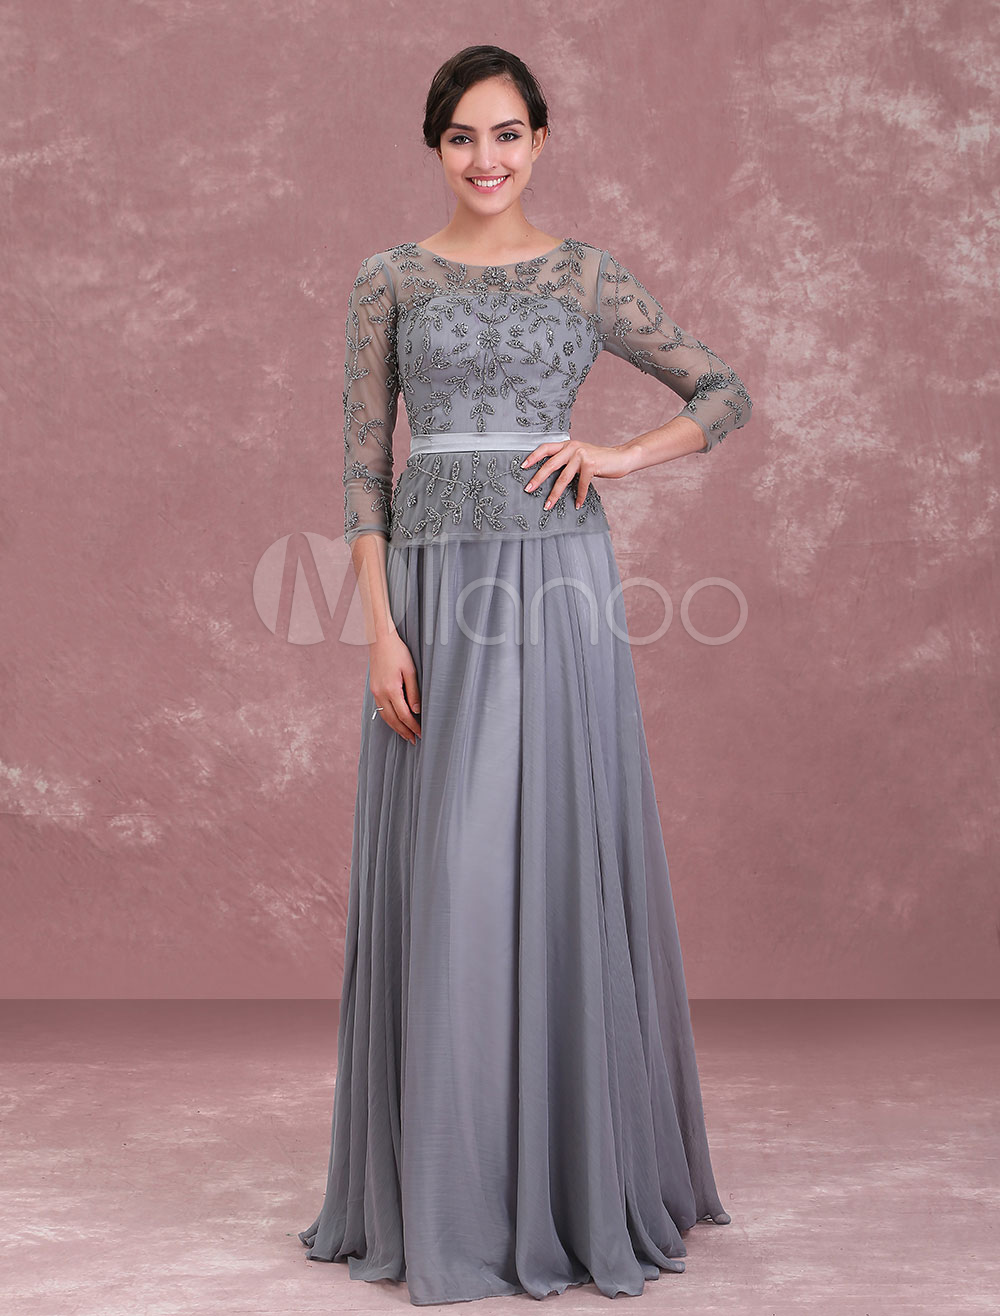 Mother Of The Bride Dresses Grey Long Sleeve Beaded Illusion Sash Floor Length Formal Occasion Dress (Wedding) photo